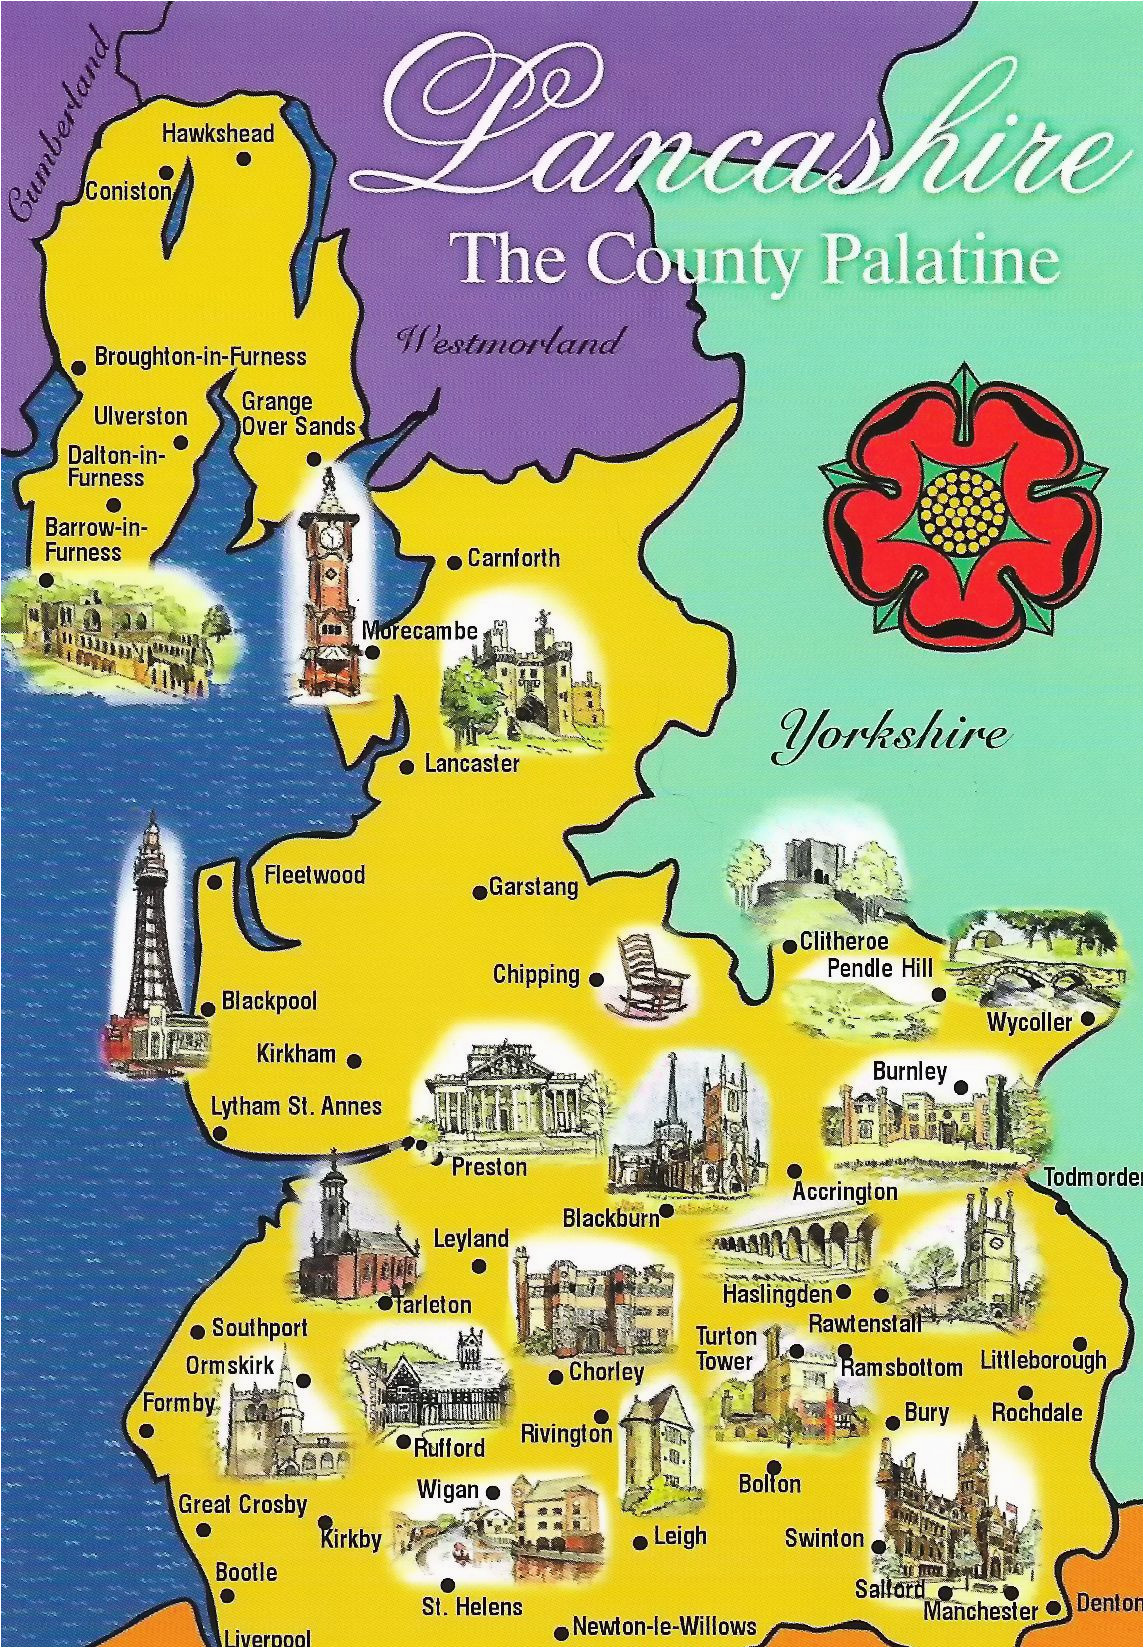 Lancashire On Map Of England Lancashire Map Sent to Me by Gordon Of northern Ireland Here is A